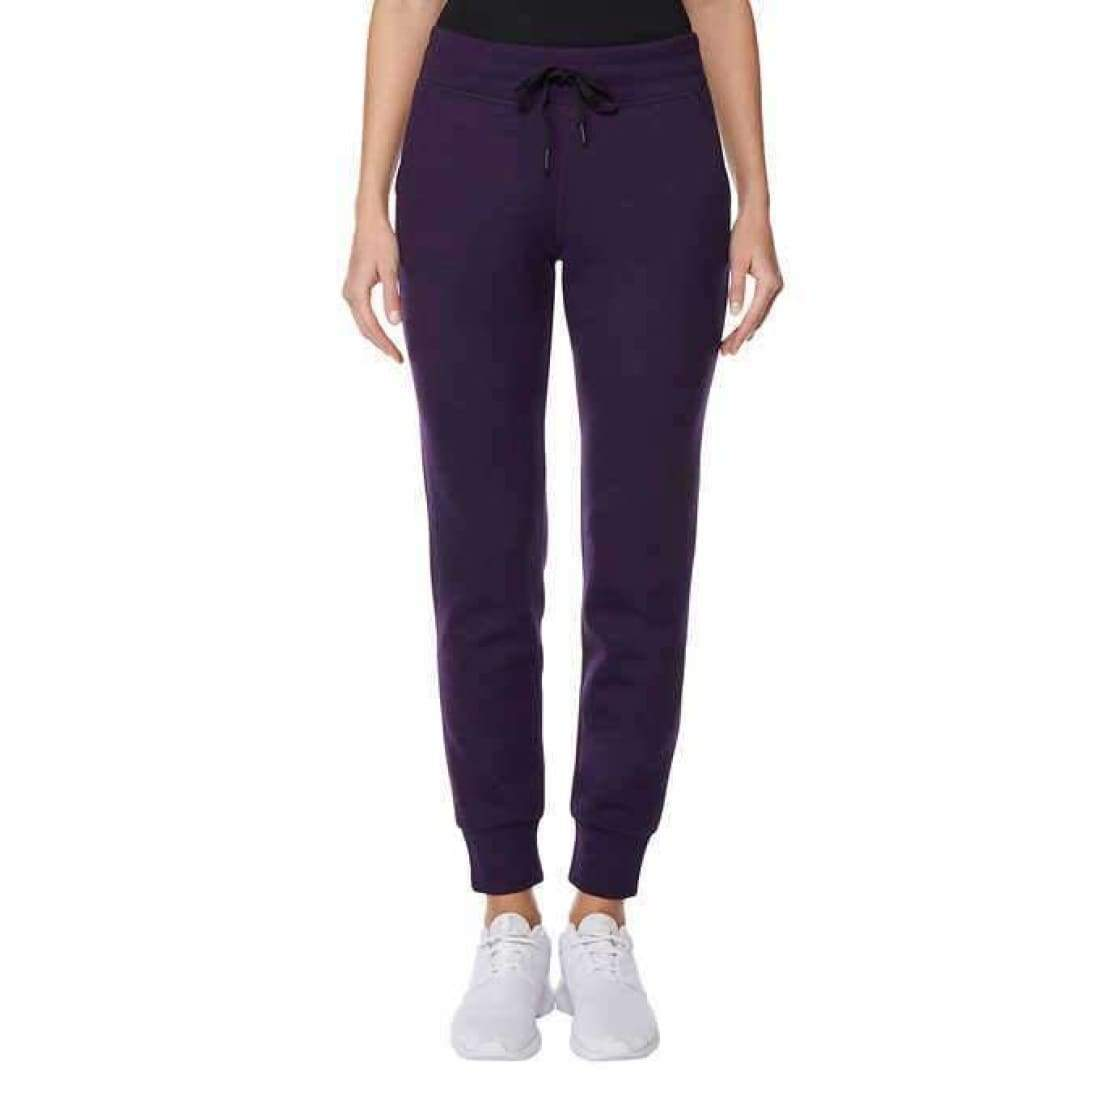 32 Degrees Ladies Tech Fleece Jogger Pant S-Purple Pants & Shorts